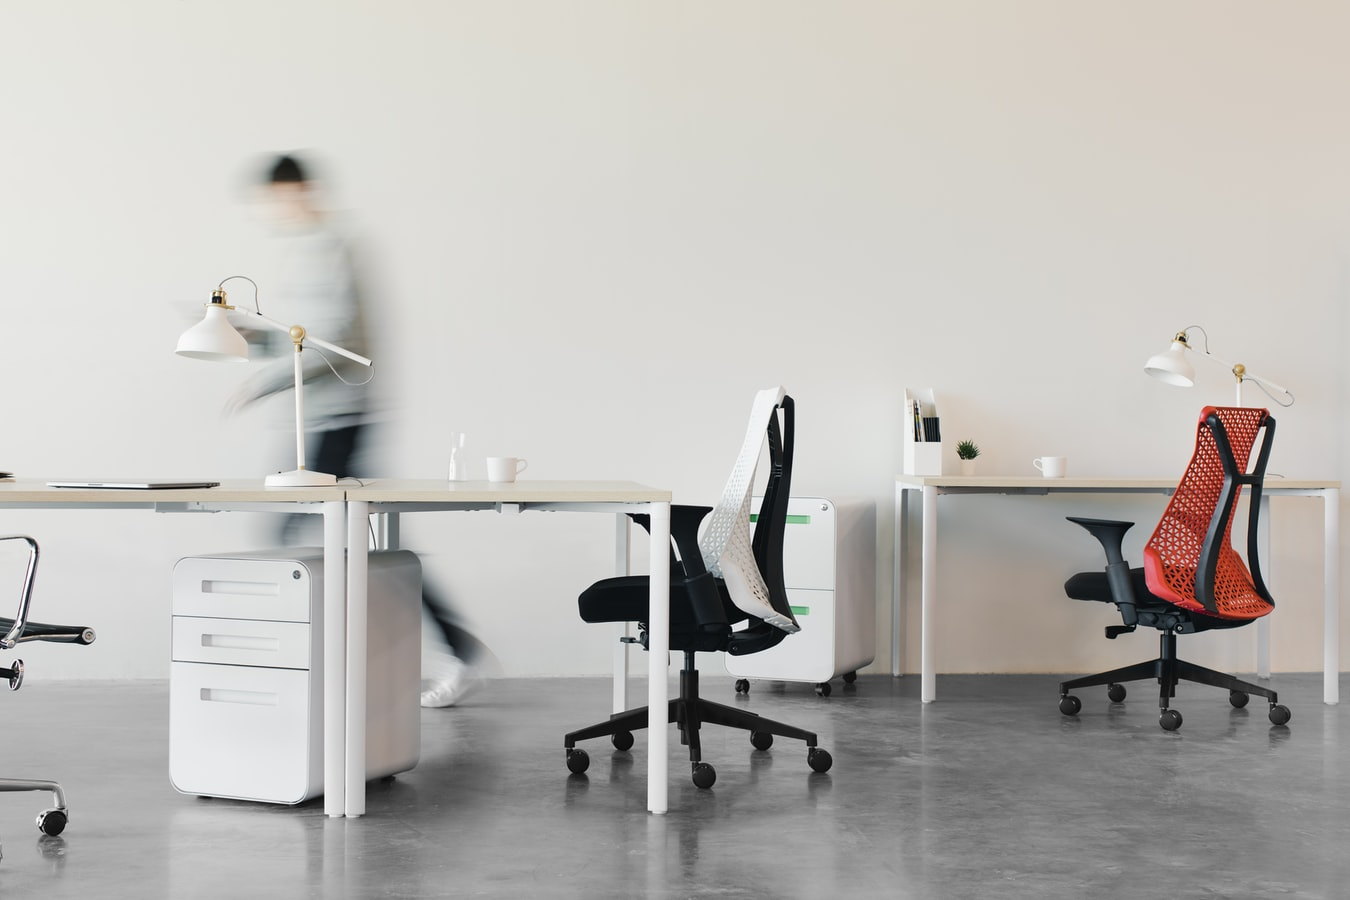 automating the workplace